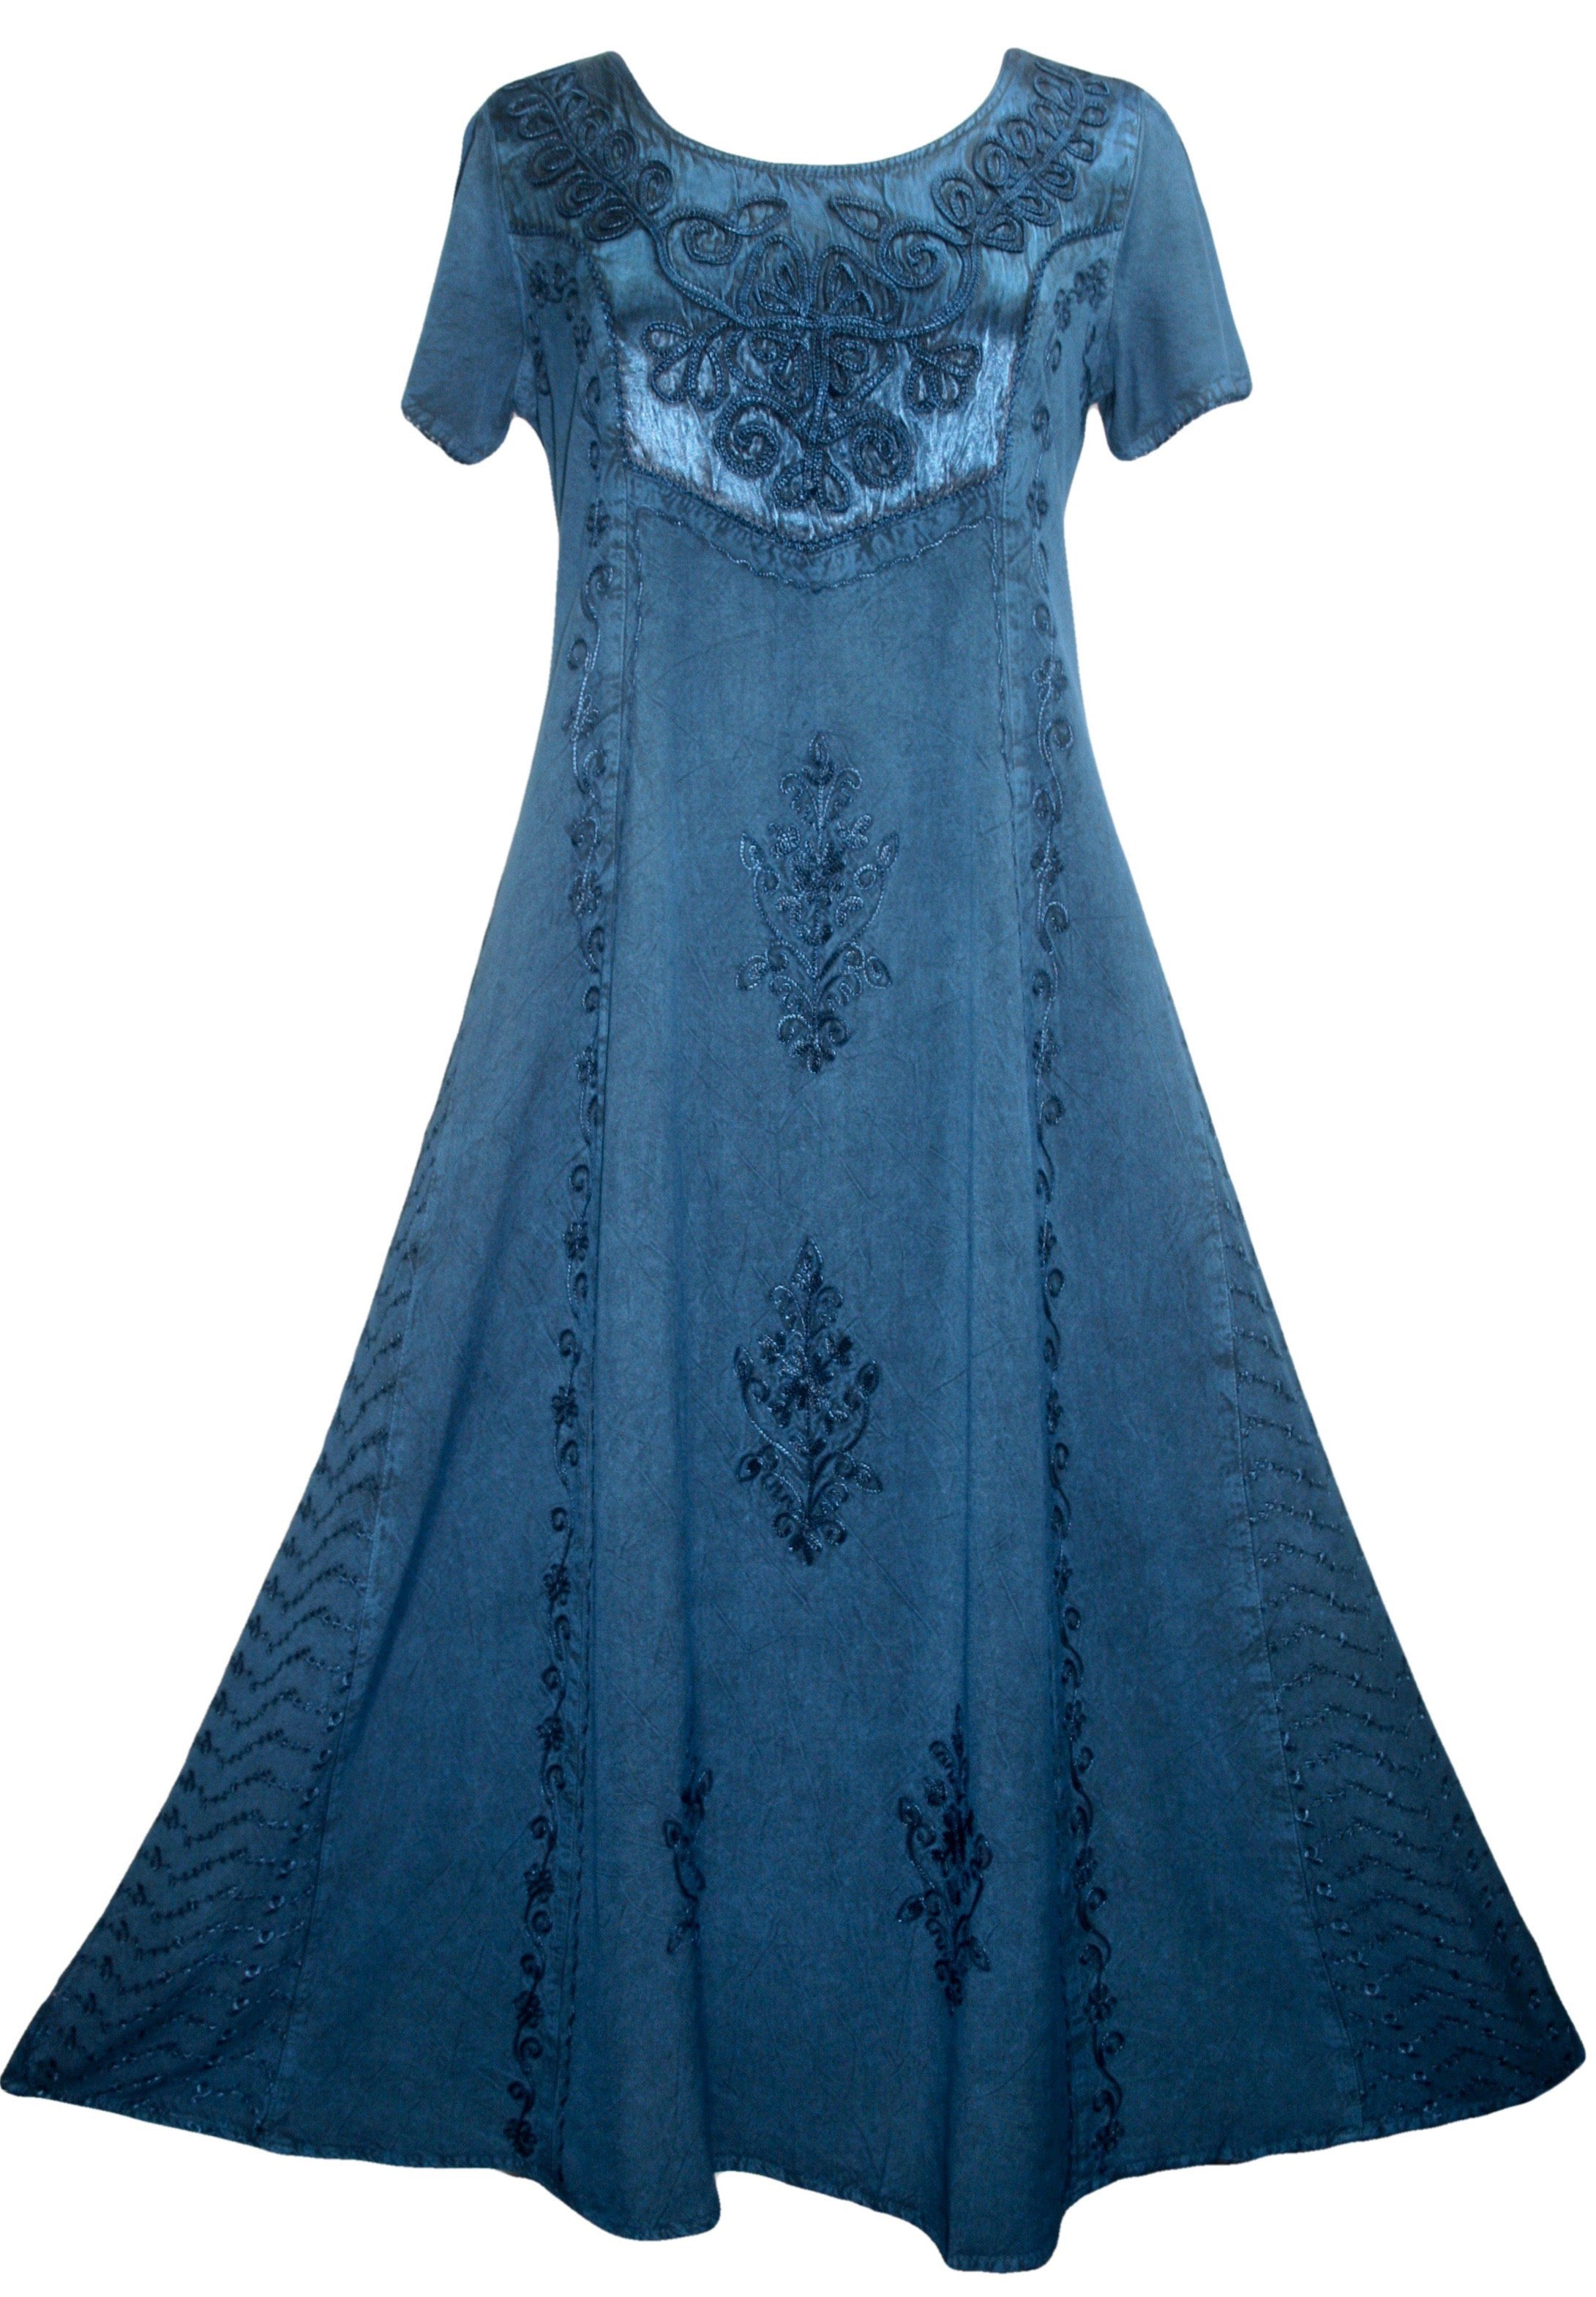 1024 DR Gothic Vintage Cap Sleeve Embroidered Casual Chic Dress Gown - Agan Traders, Blue